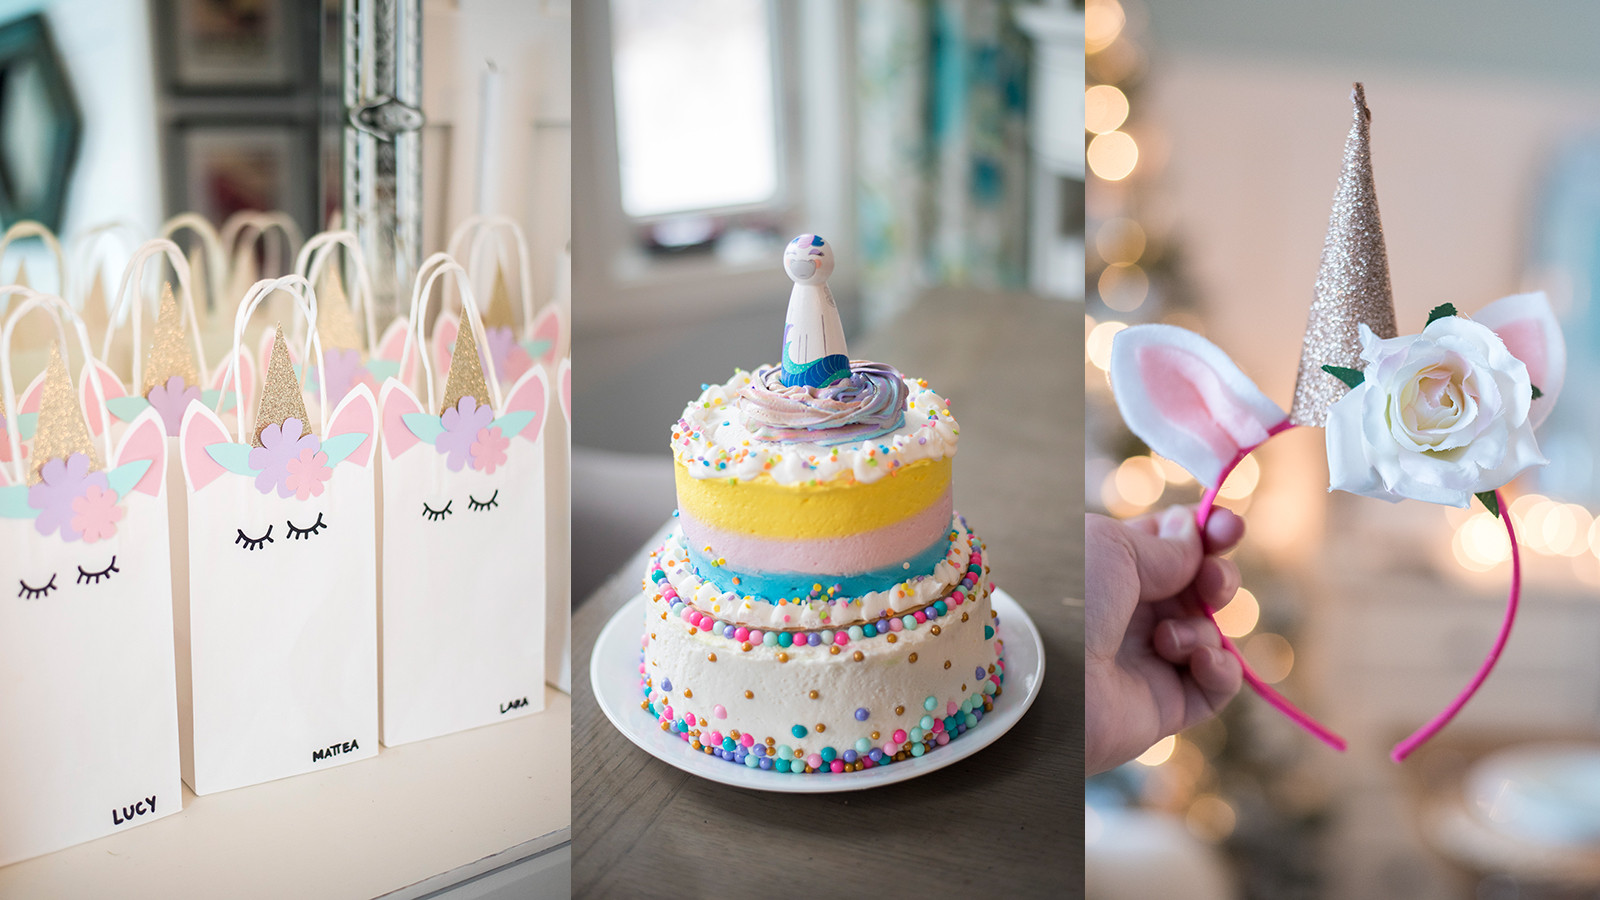 Best ideas about DIY Birthday Decorations . Save or Pin DIY Unicorn Party Ideas Now.